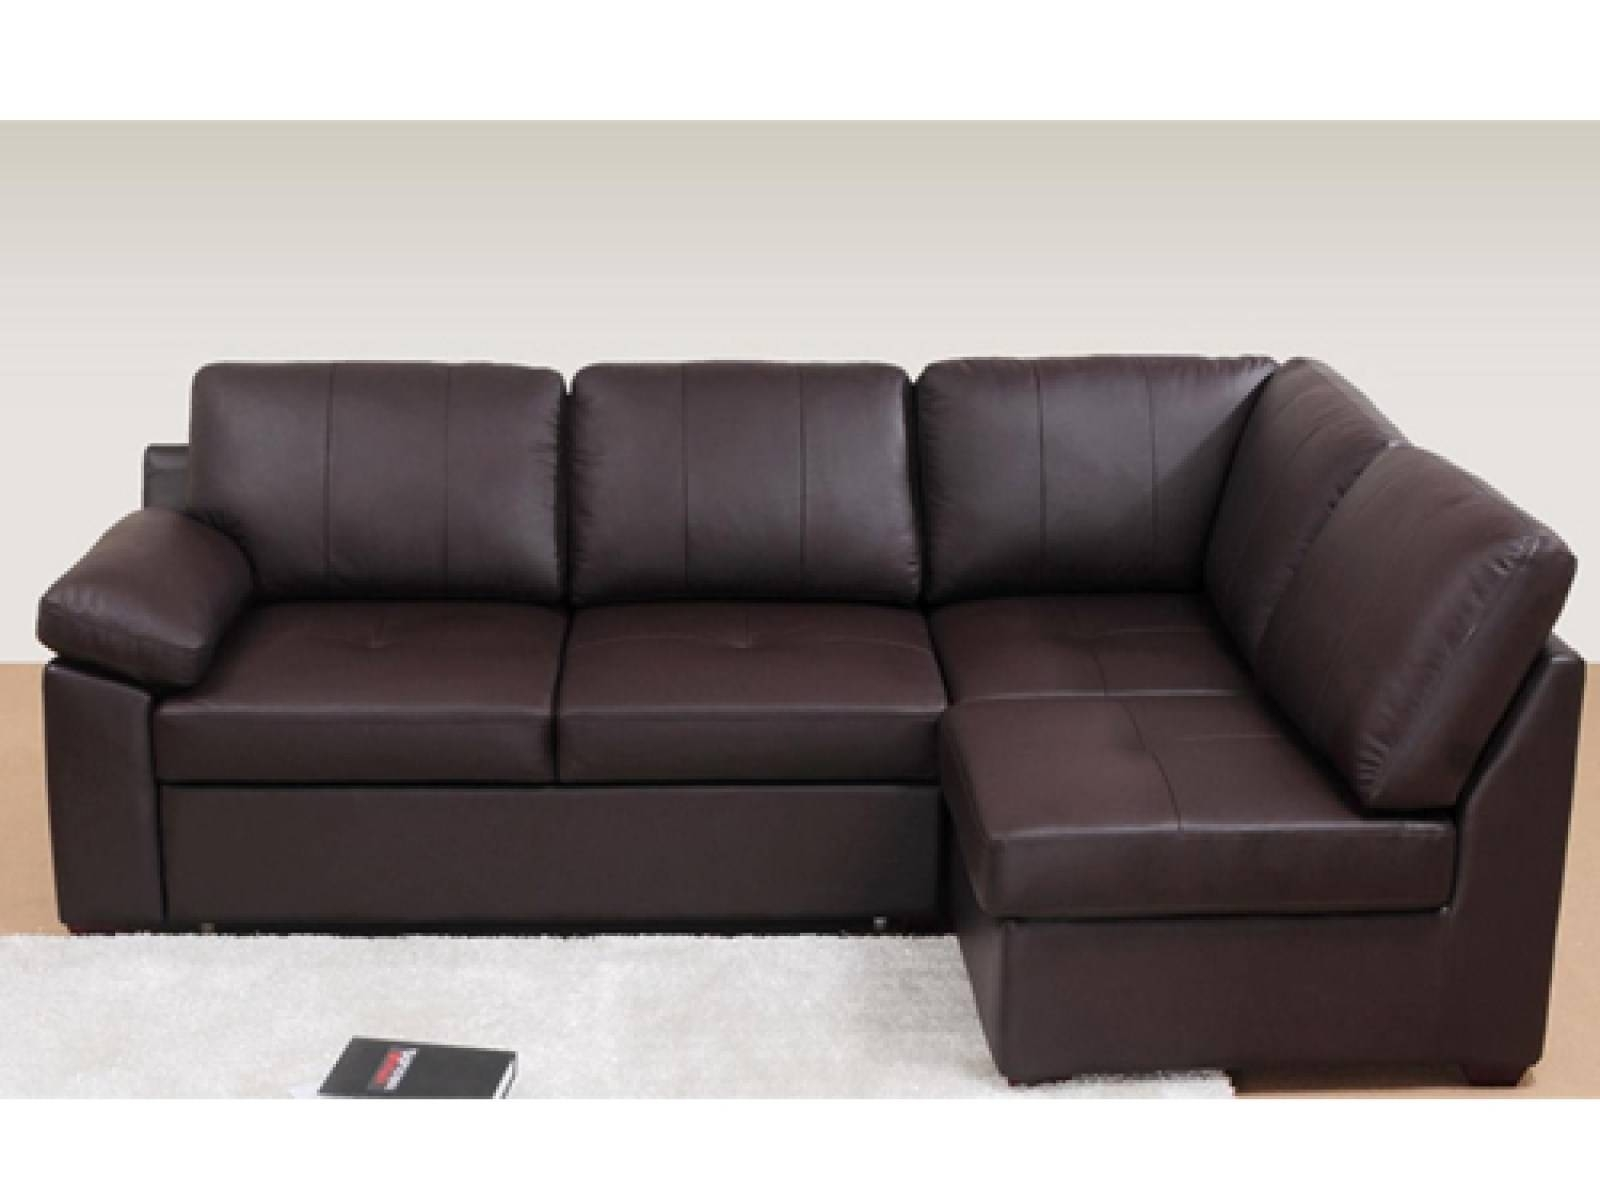 ▻ Sofa : 8 Leather Corner Sofa Bed Wonderful Leather Corner Sofa inside Leather Corner Sofa Bed (Image 29 of 30)